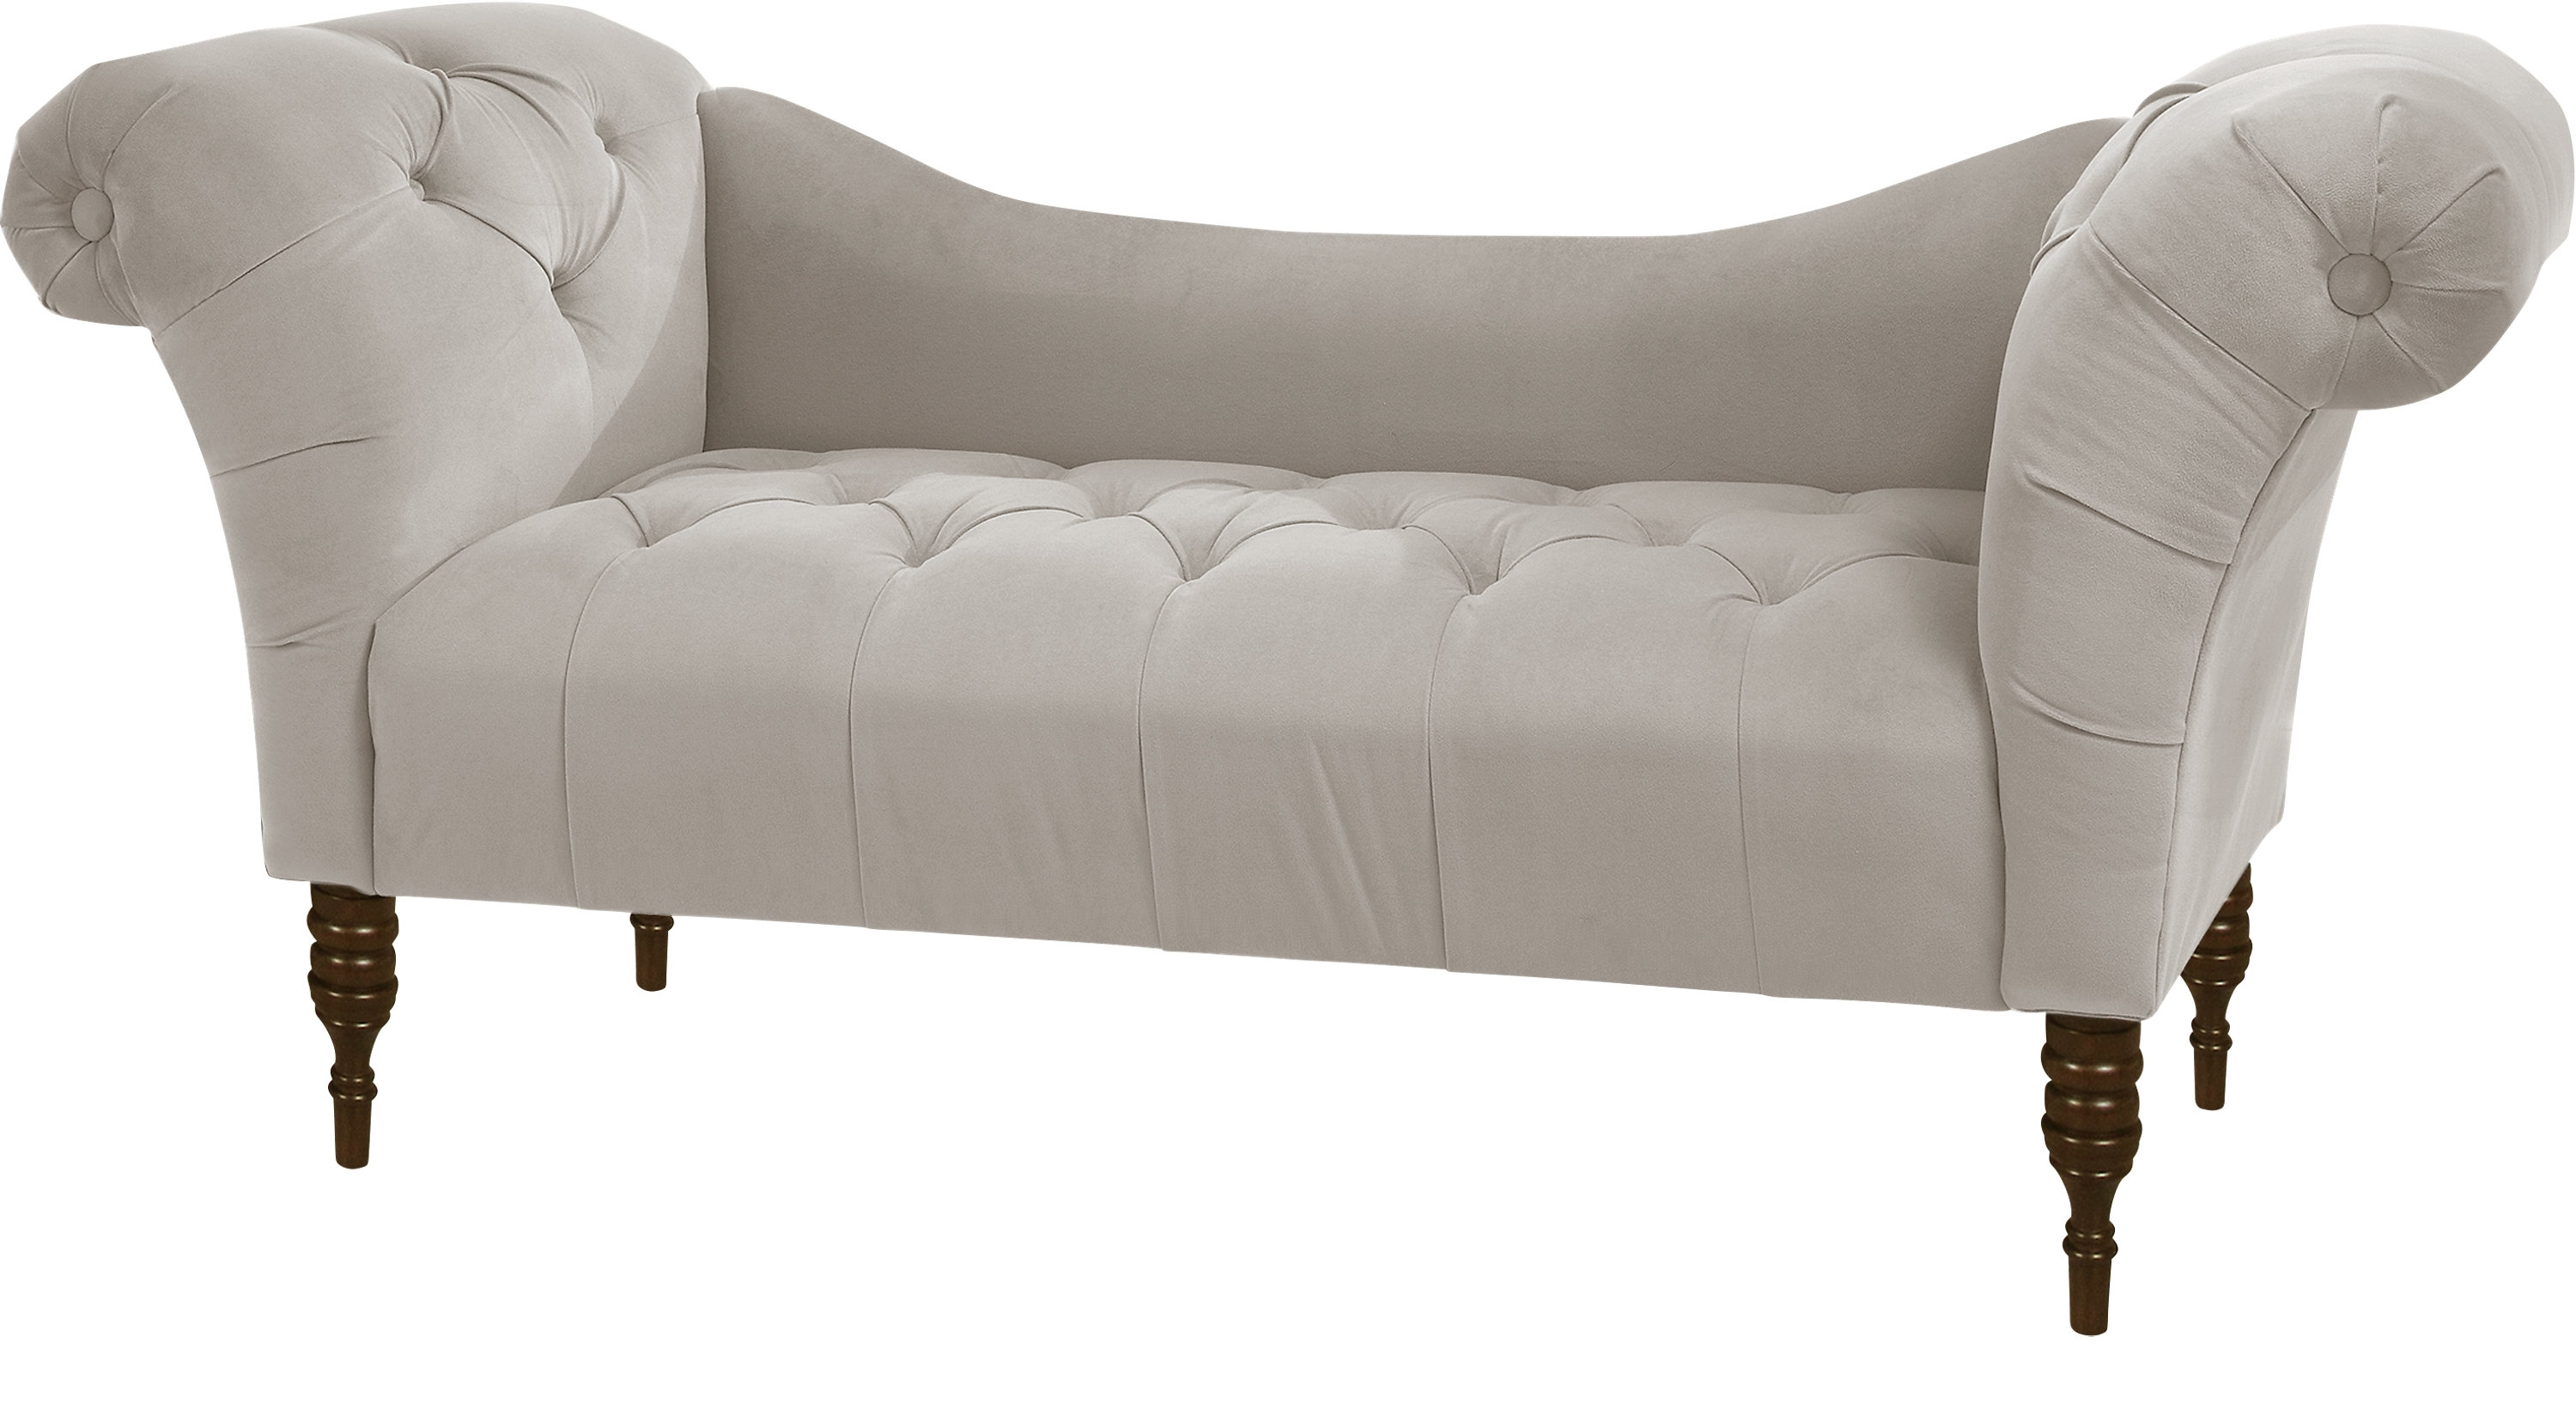 Chaise Accent Bench Or Lounge Pertaining To Most Popular Accent Chaises (View 5 of 15)